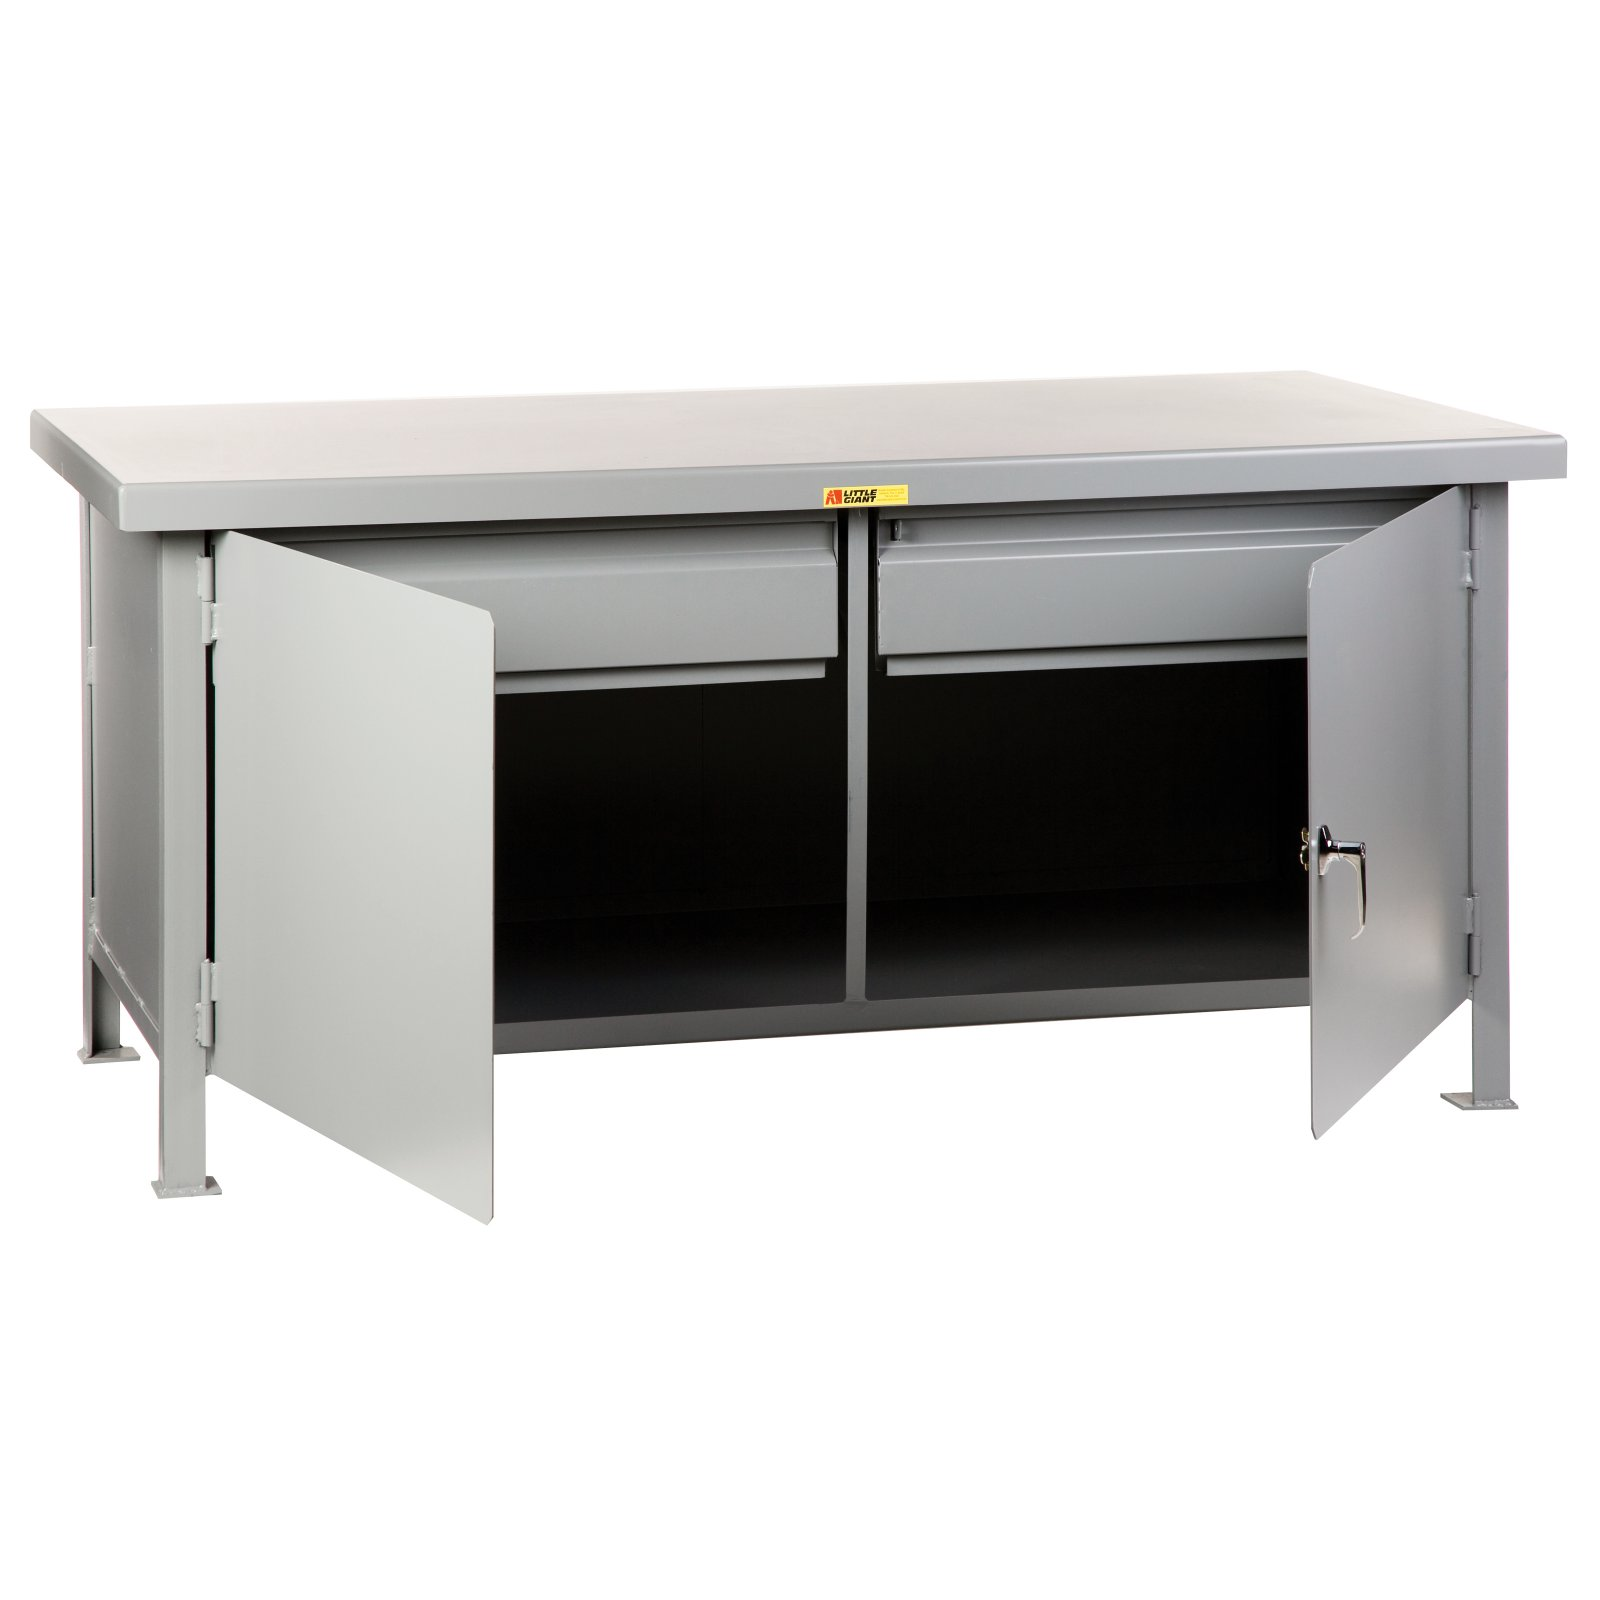 Little Giant Heavy Duty Cabinet Workbench with 2 Drawers by Brennan Equipment and Manufacturing Inc